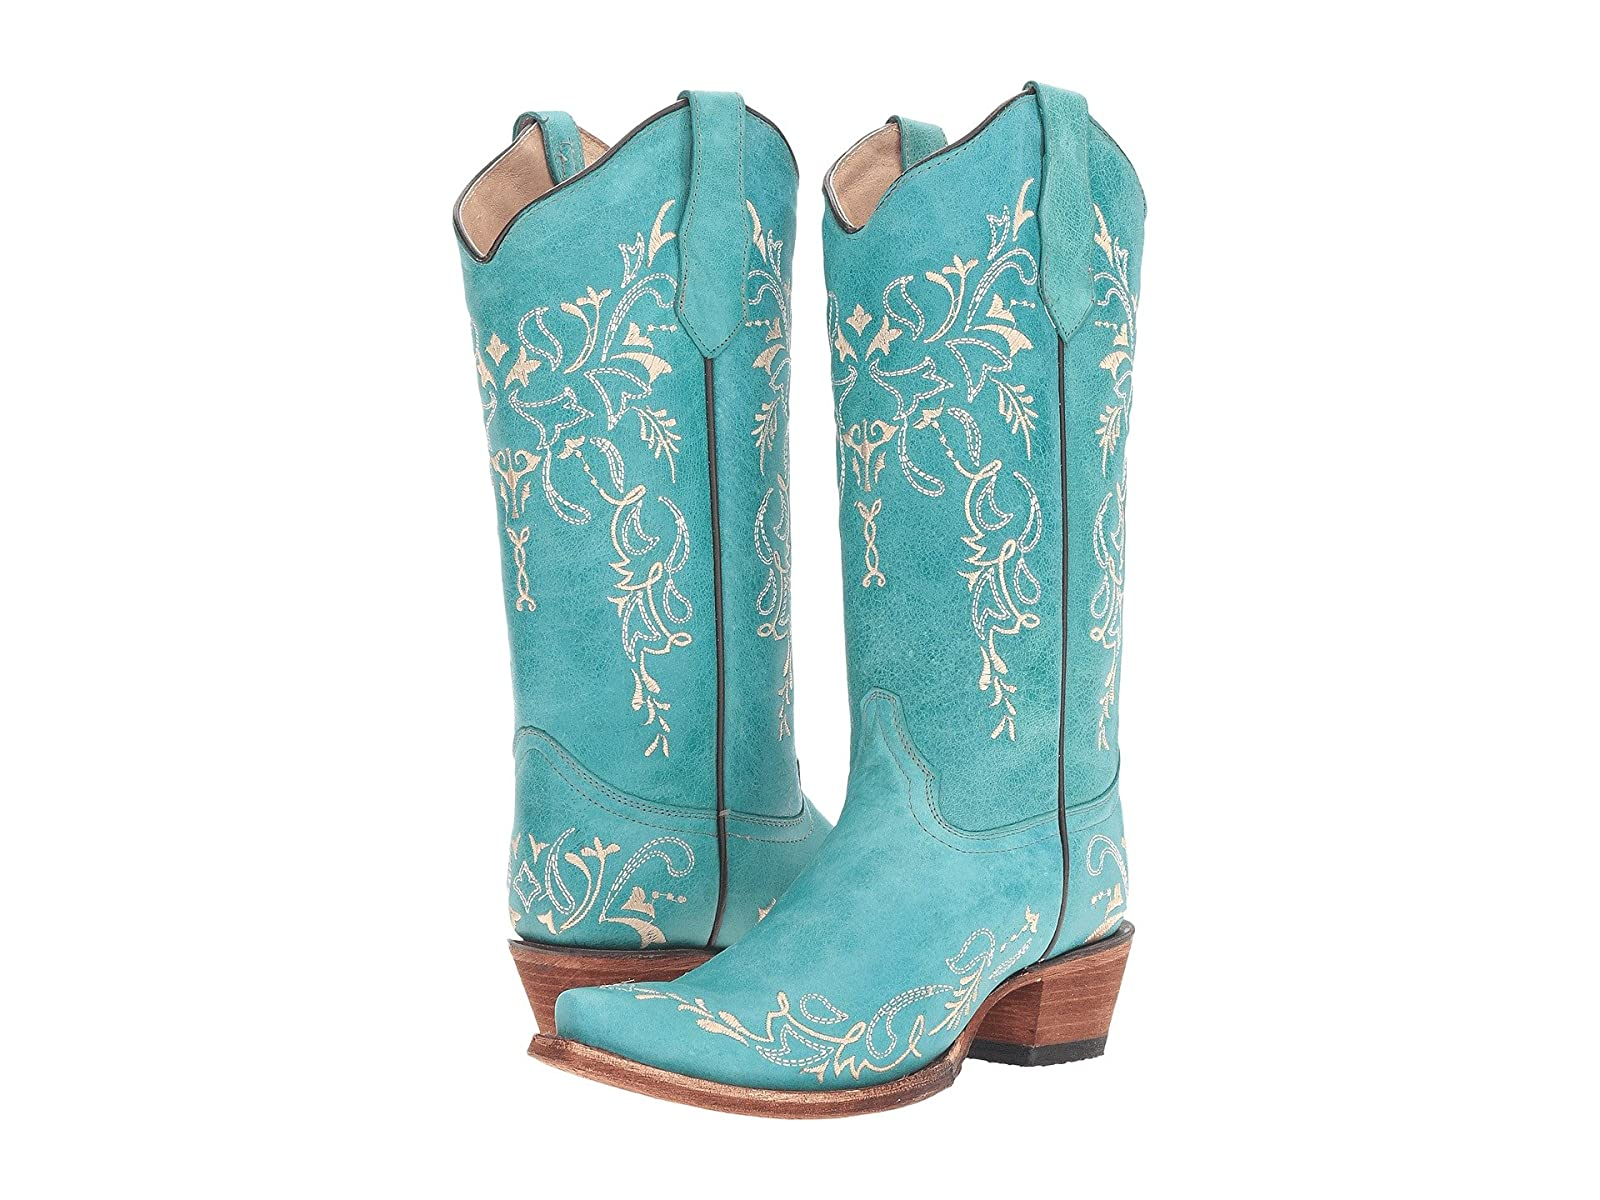 Corral Boots L5148Affordable and distinctive shoes